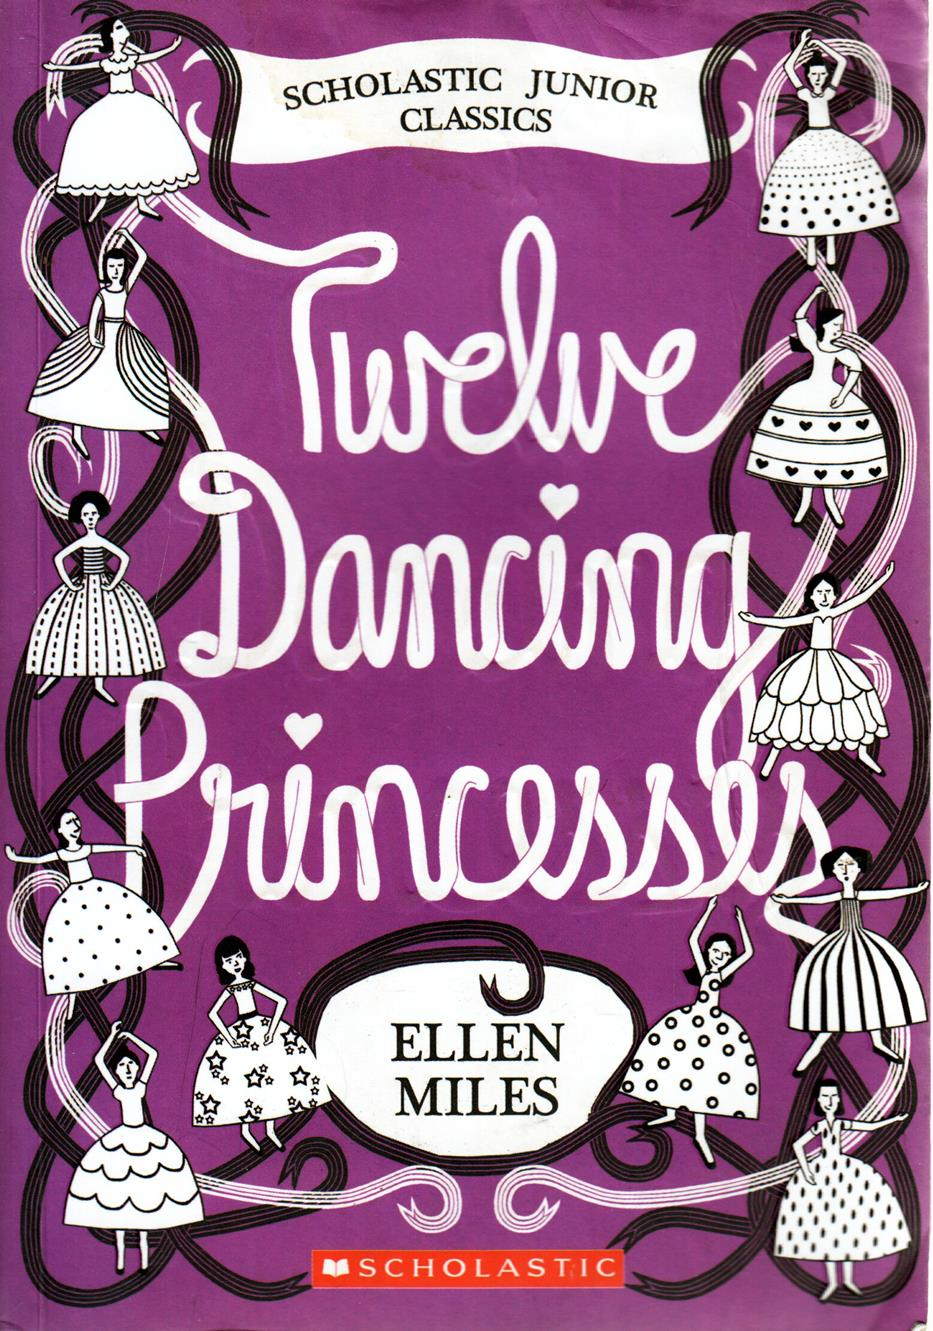 Twelve Dancing princess